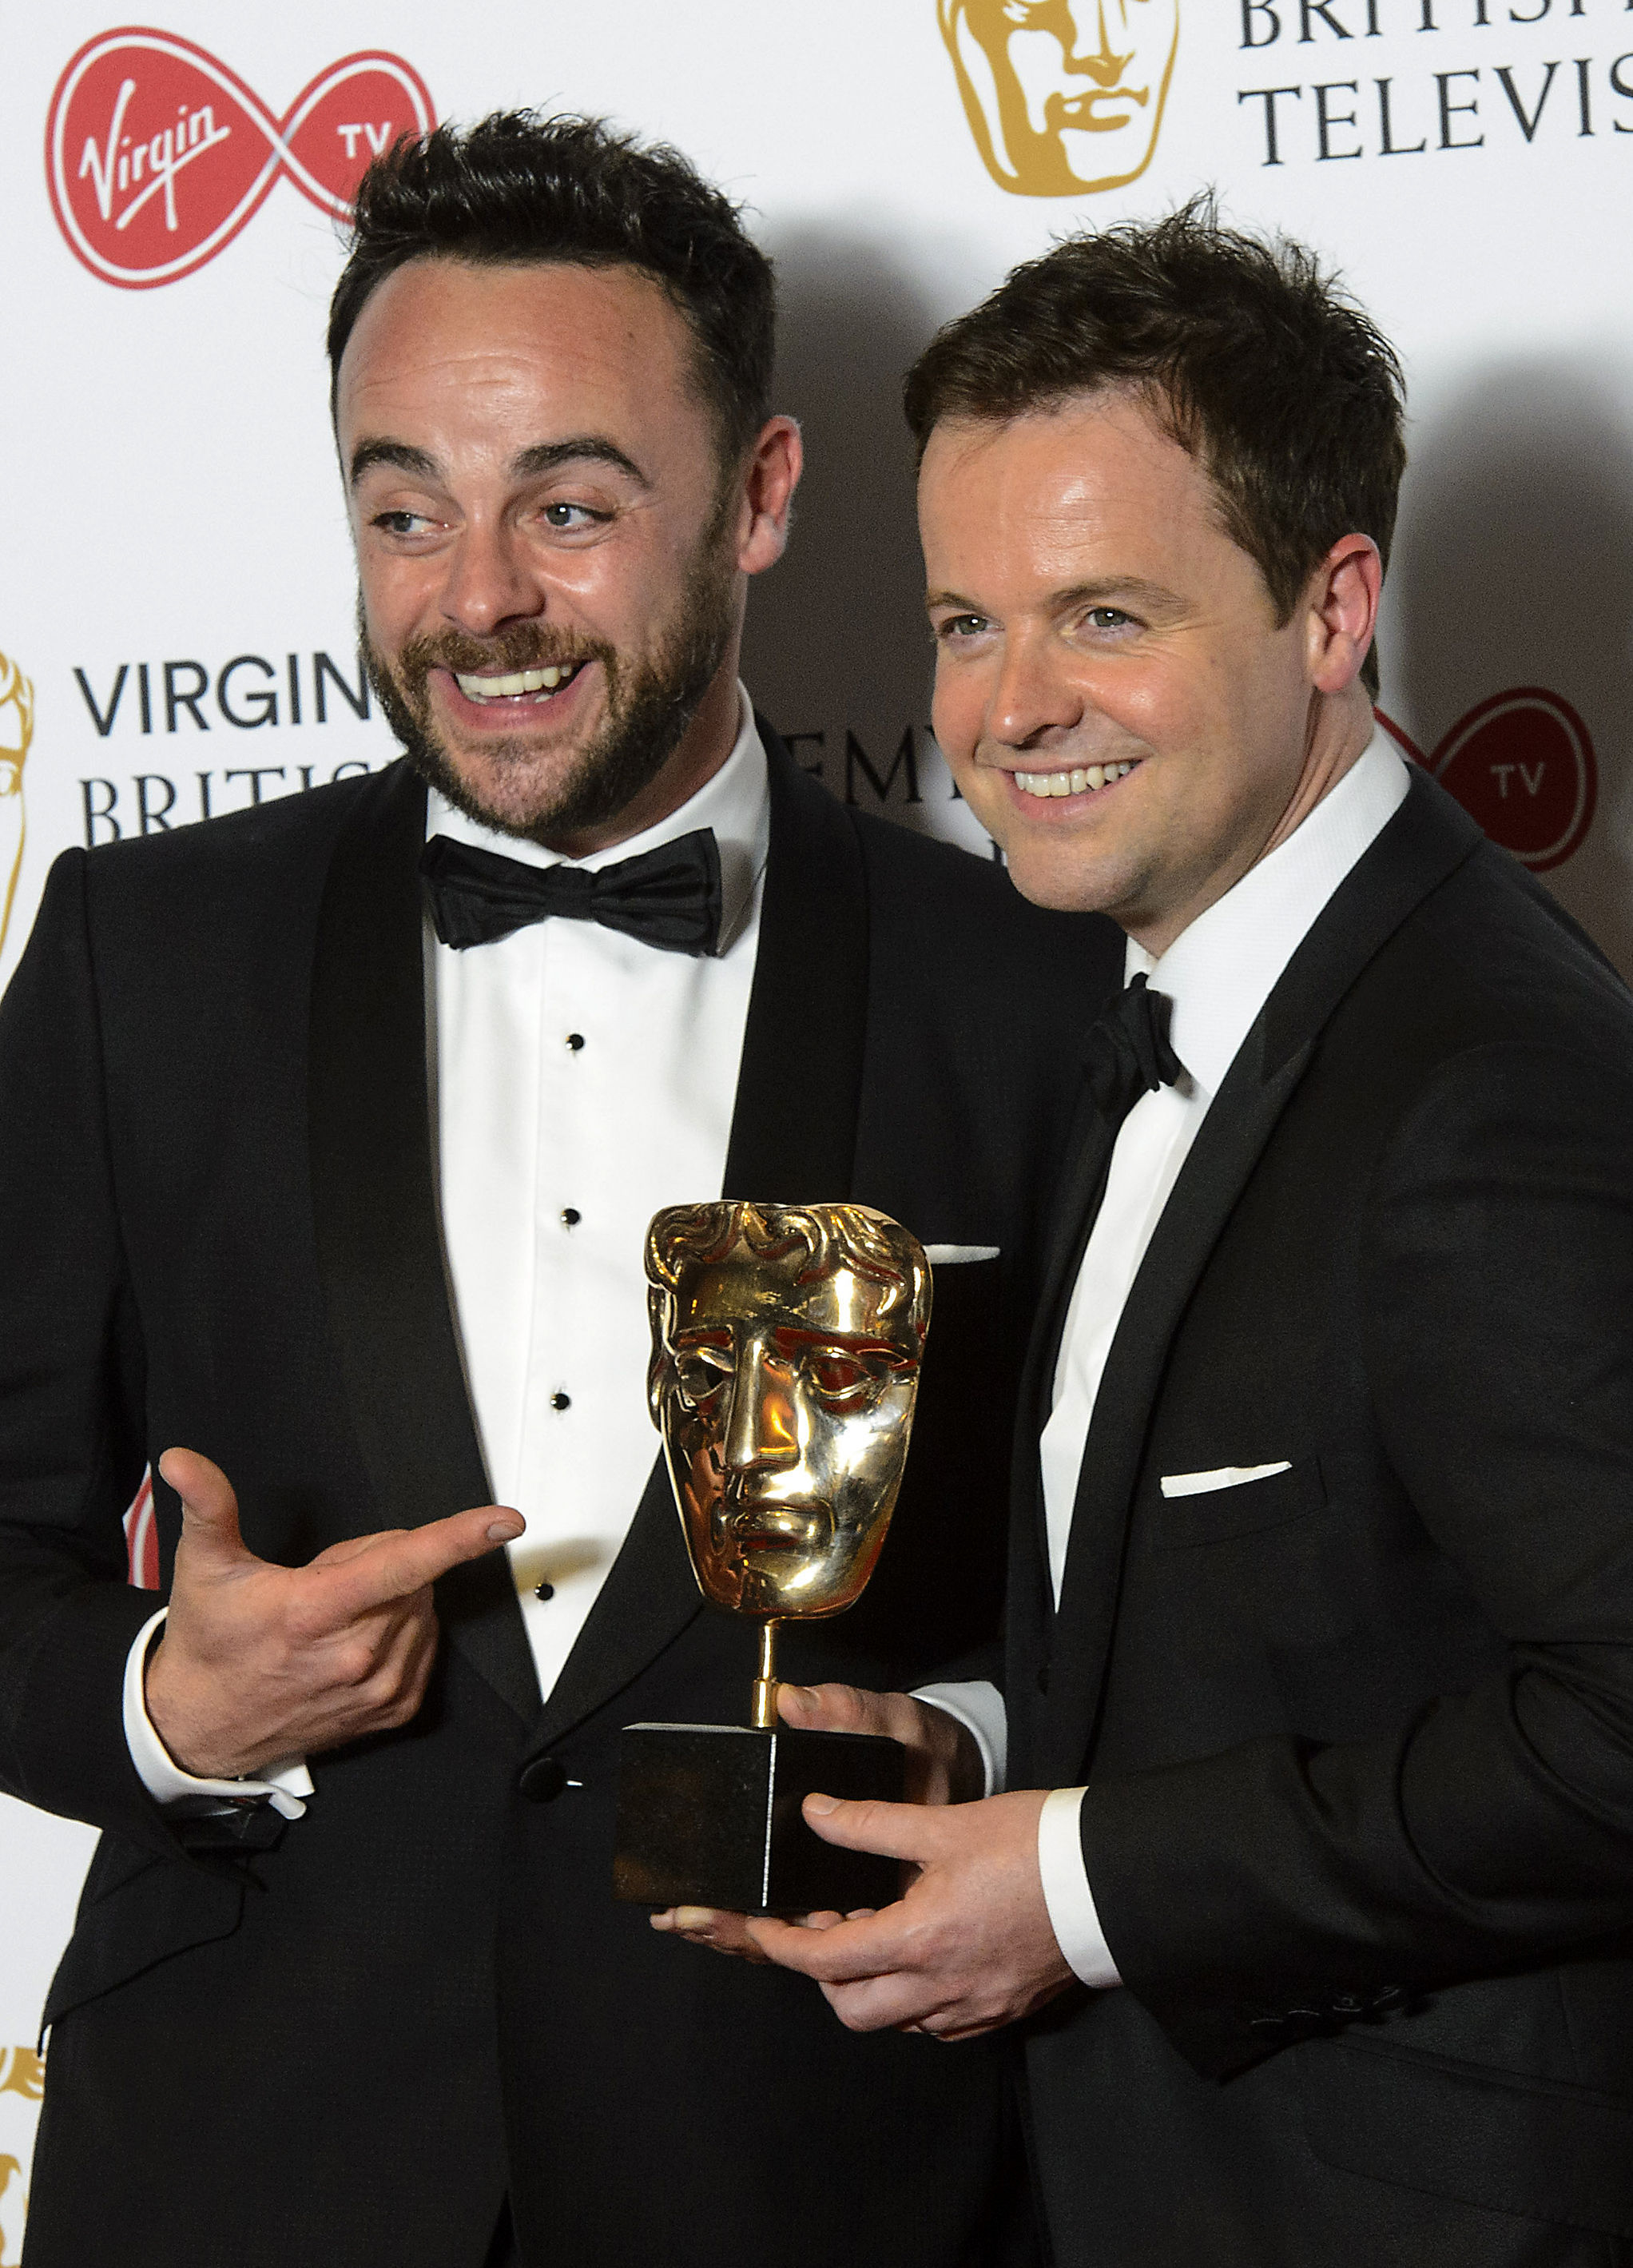 CANCELLED: Ant McPartlin has pulled the plug on TV work with Declan Donnelly. Matt Crossick/PA Wire